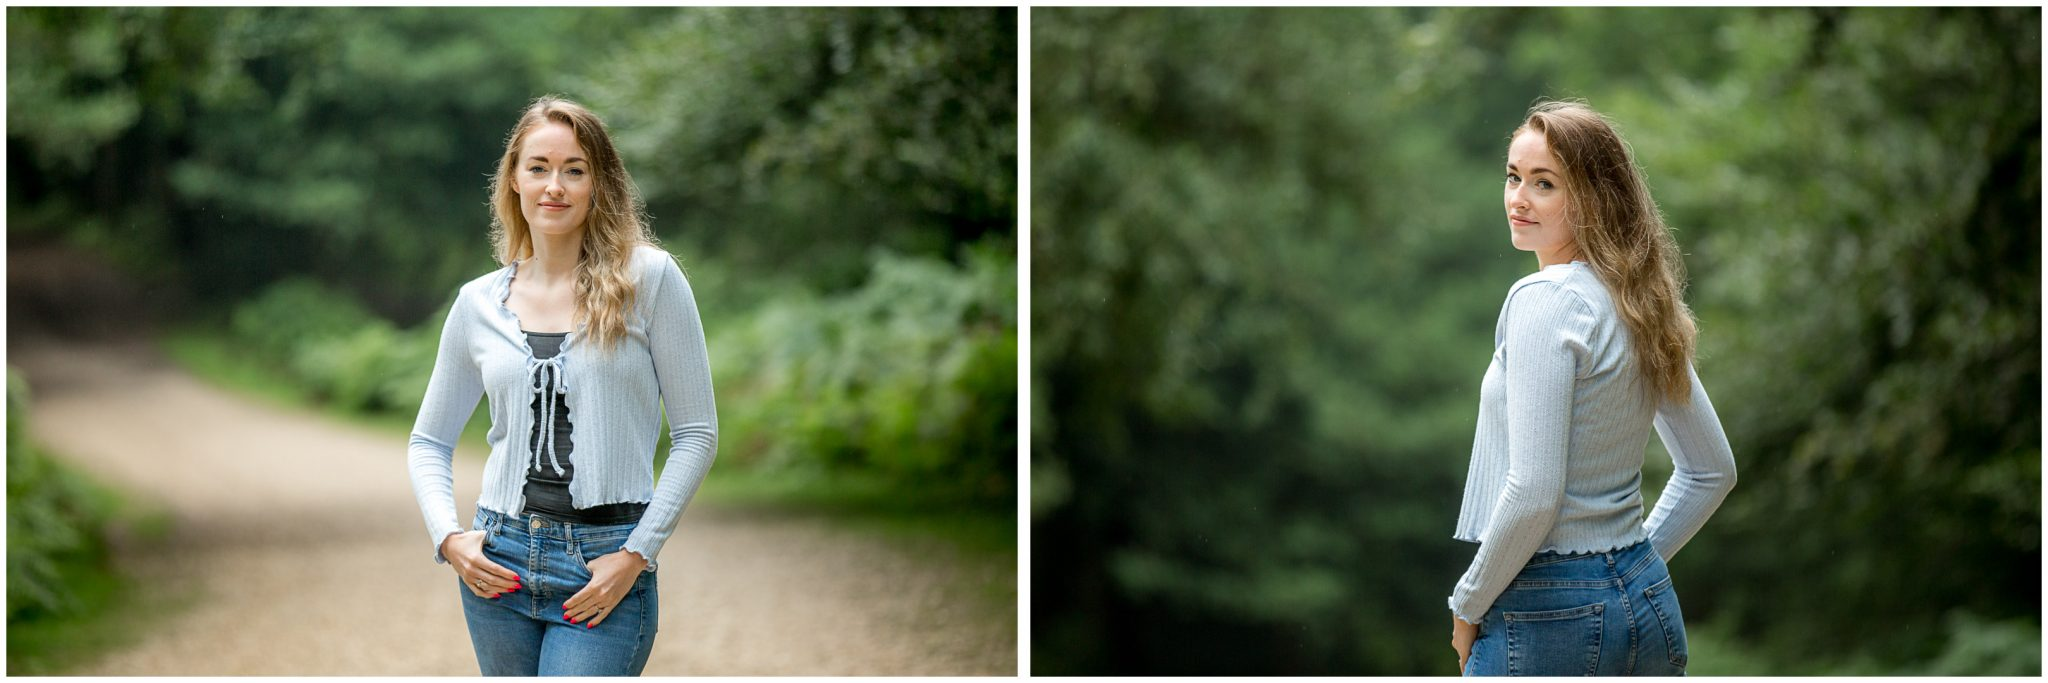 New Forest pre-wedding shoot 11